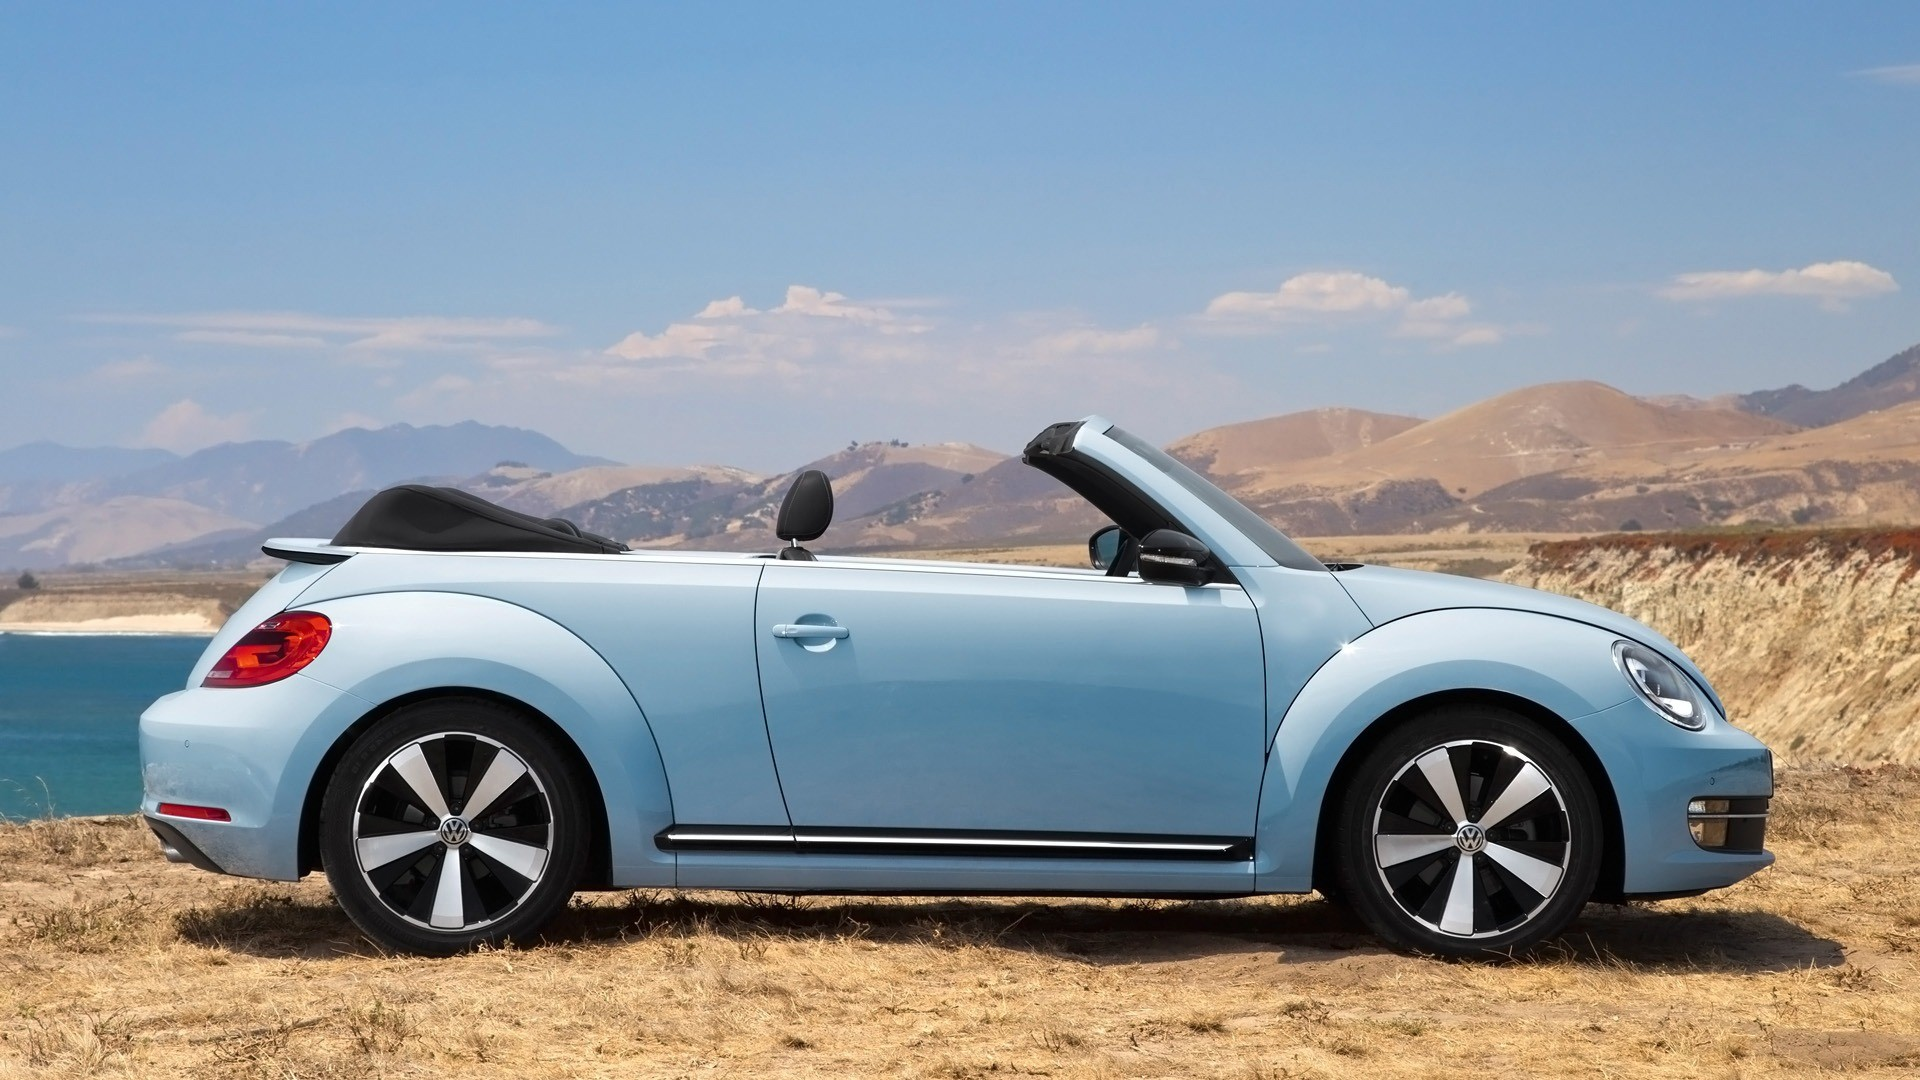 volkswagen beetle convertible wallpaper background